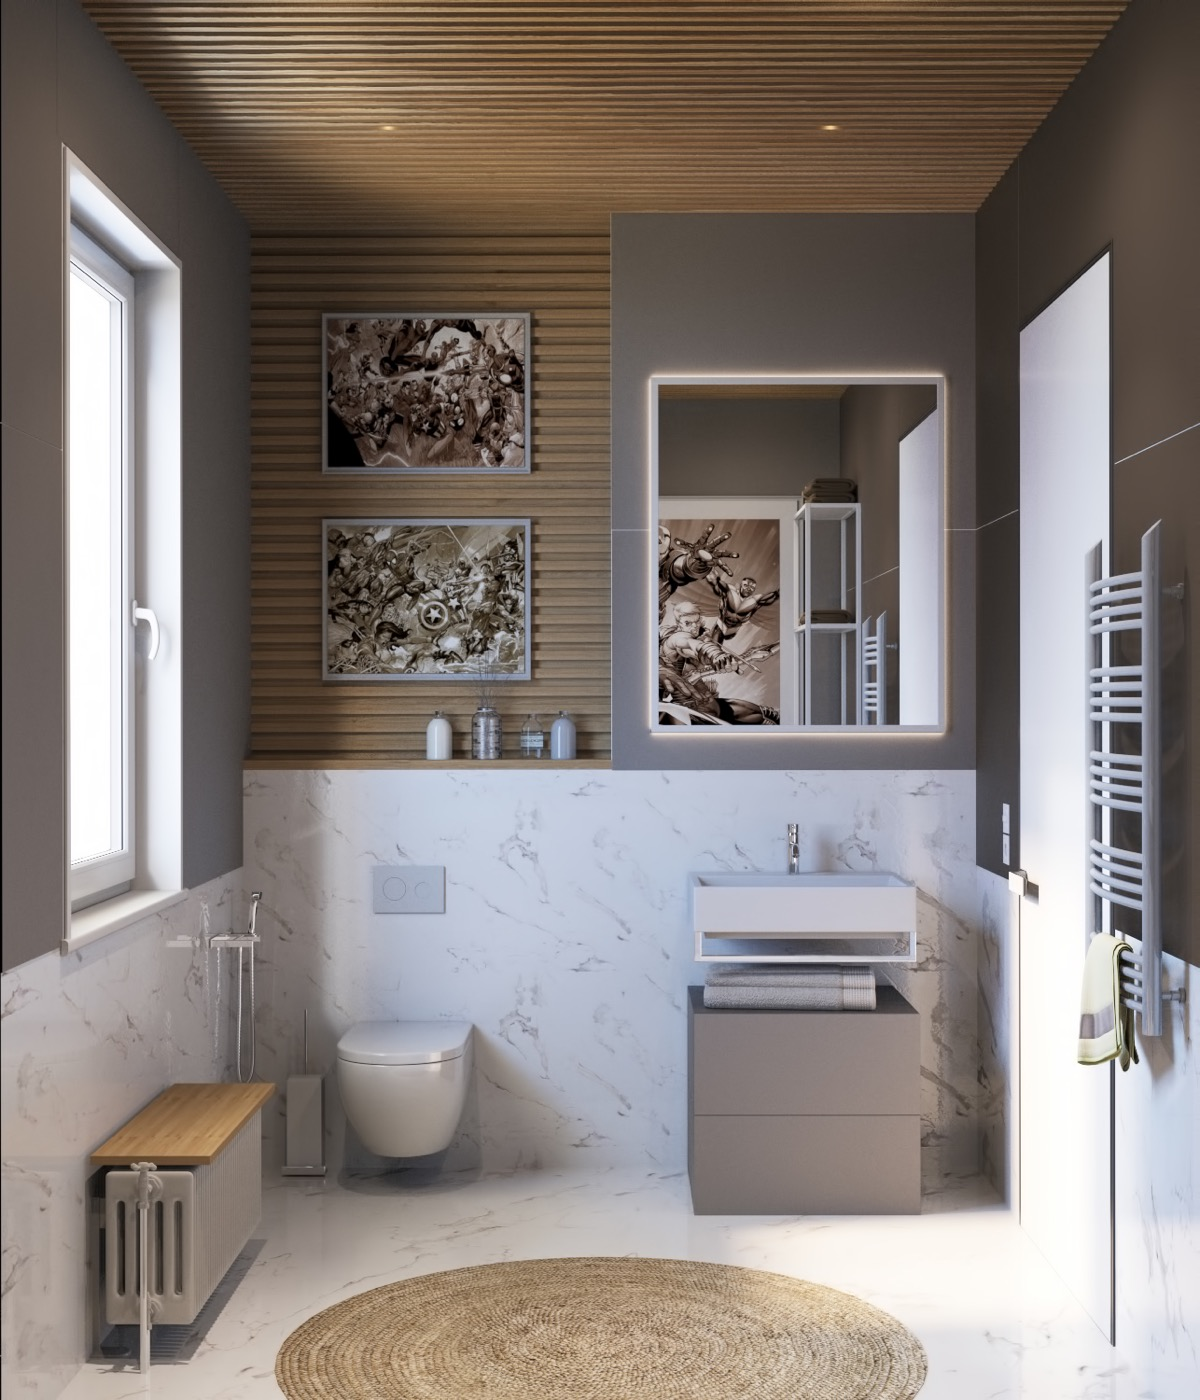 Modern Homes Modern Bathrooms Designs Ideas: 40 Modern Bathroom Vanities That Overflow With Style